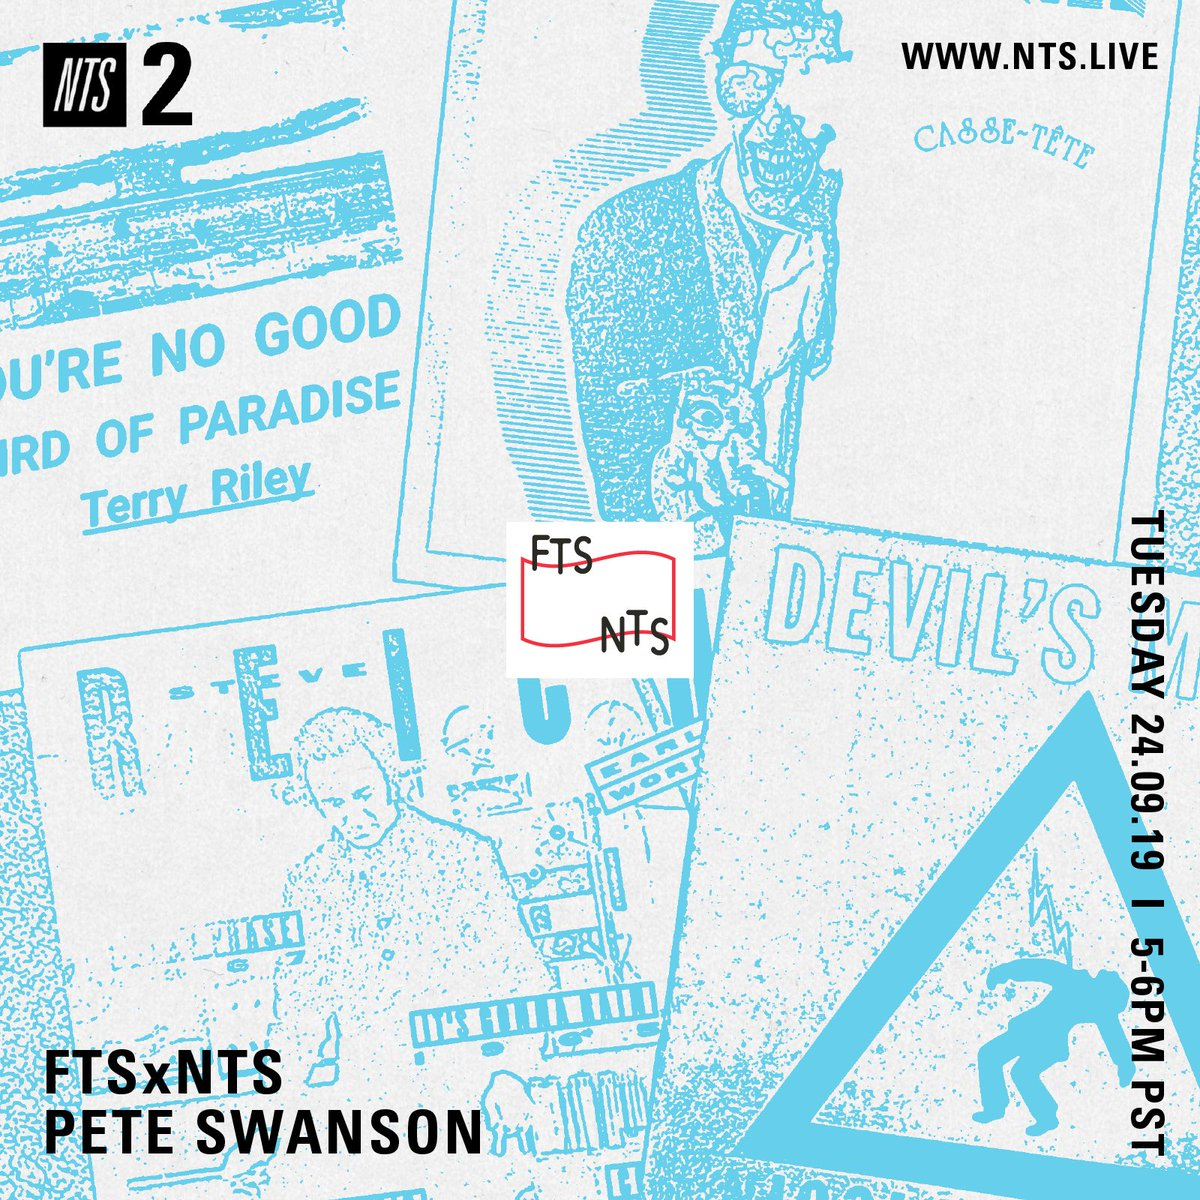 .@pete_swans taking over channel 2 for the next hour. Keep it locked: nts.live/2